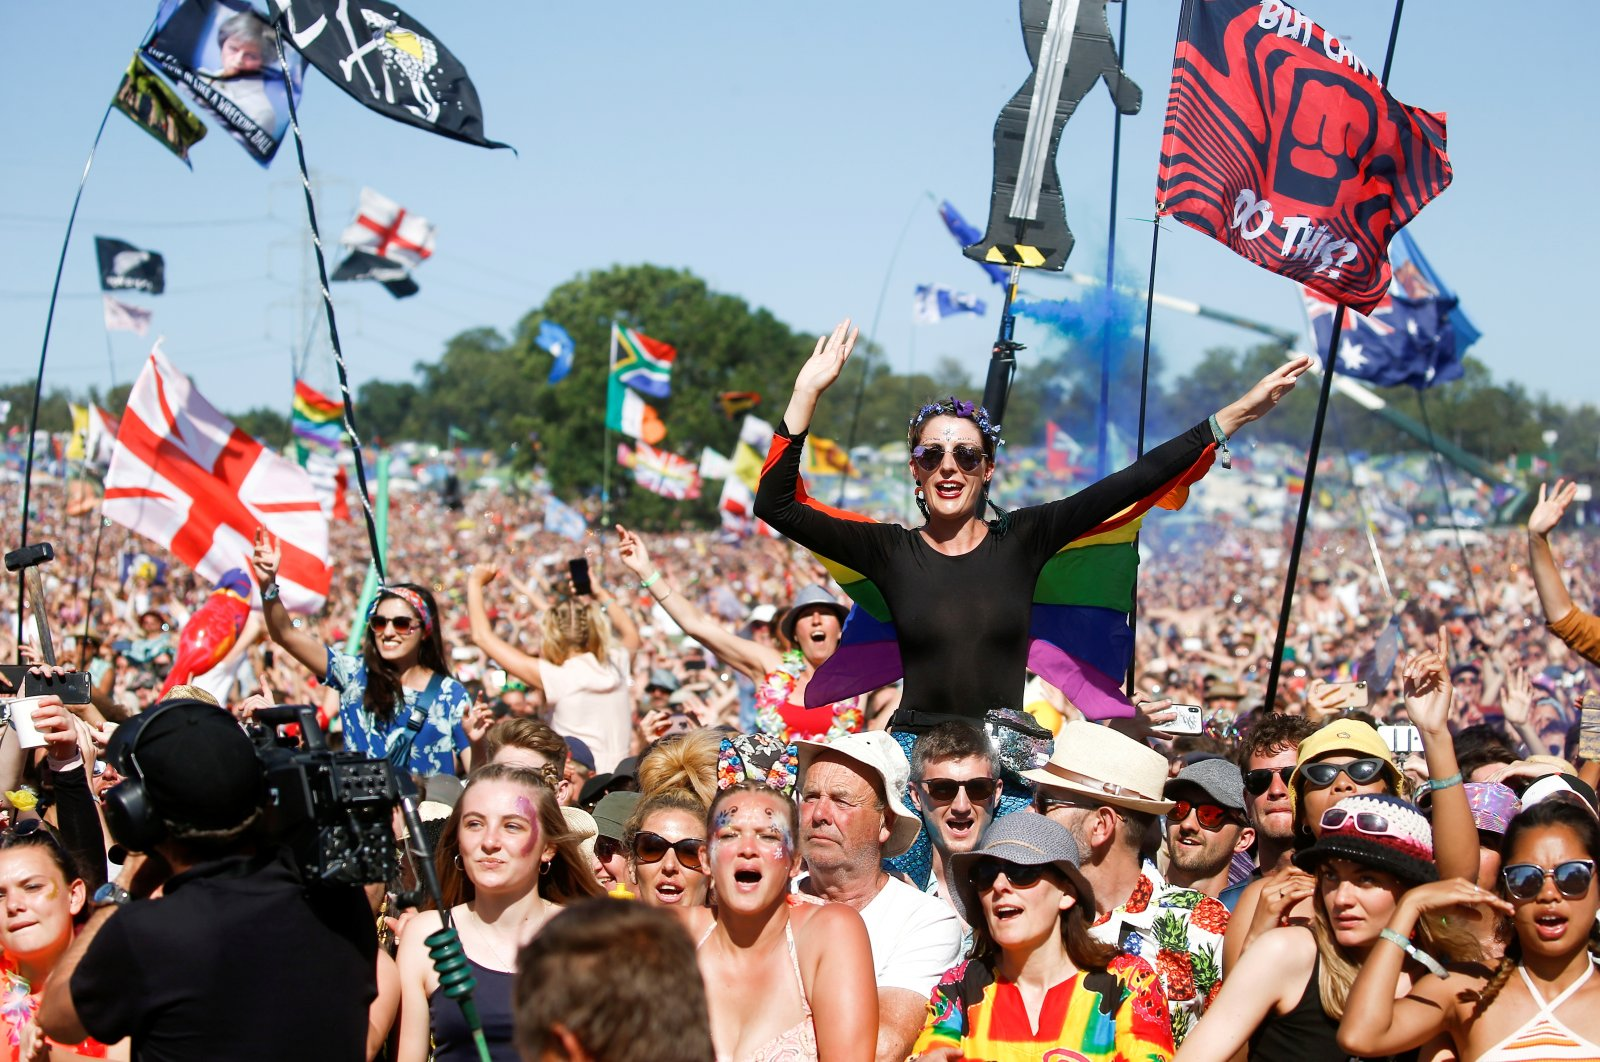 Revellers watch Kylie Minogue perform on the Pyramid Stage during the Glastonbury Festival in Somerset, England, U.K., June 30, 2019. (Reuters Photo)